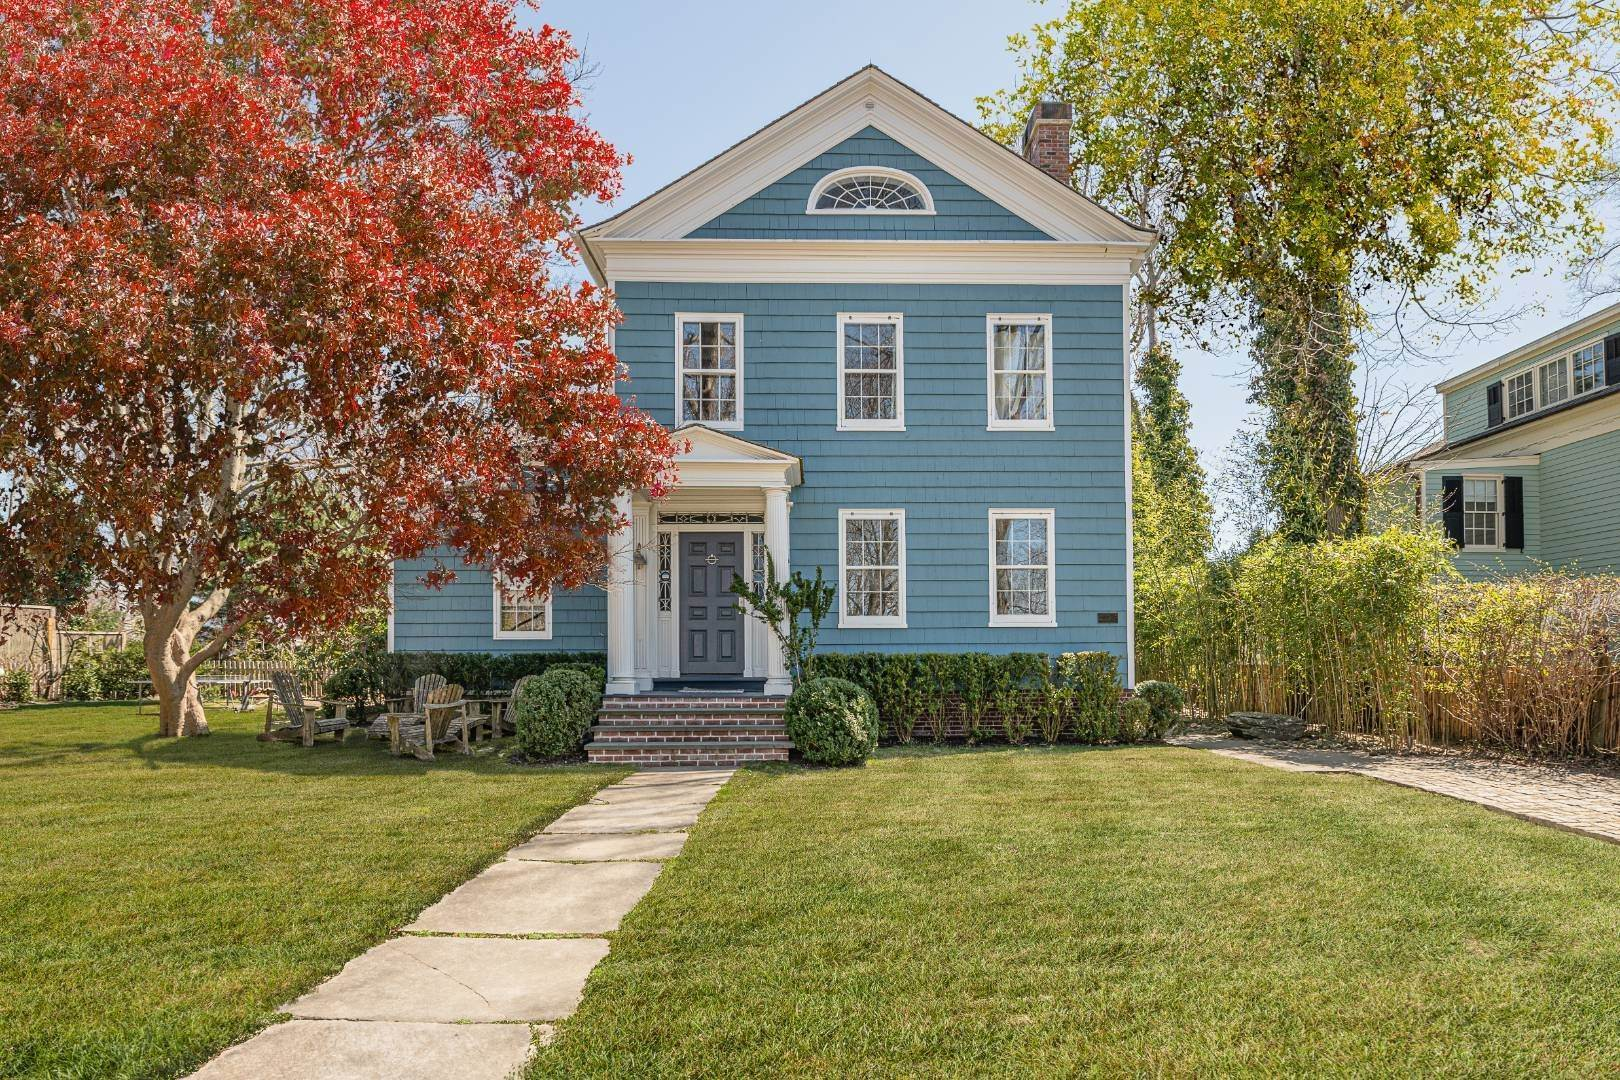 Single Family Home for Sale at 1+ Acre Historic District Offering 10 High Street, Sag Harbor, NY 11963